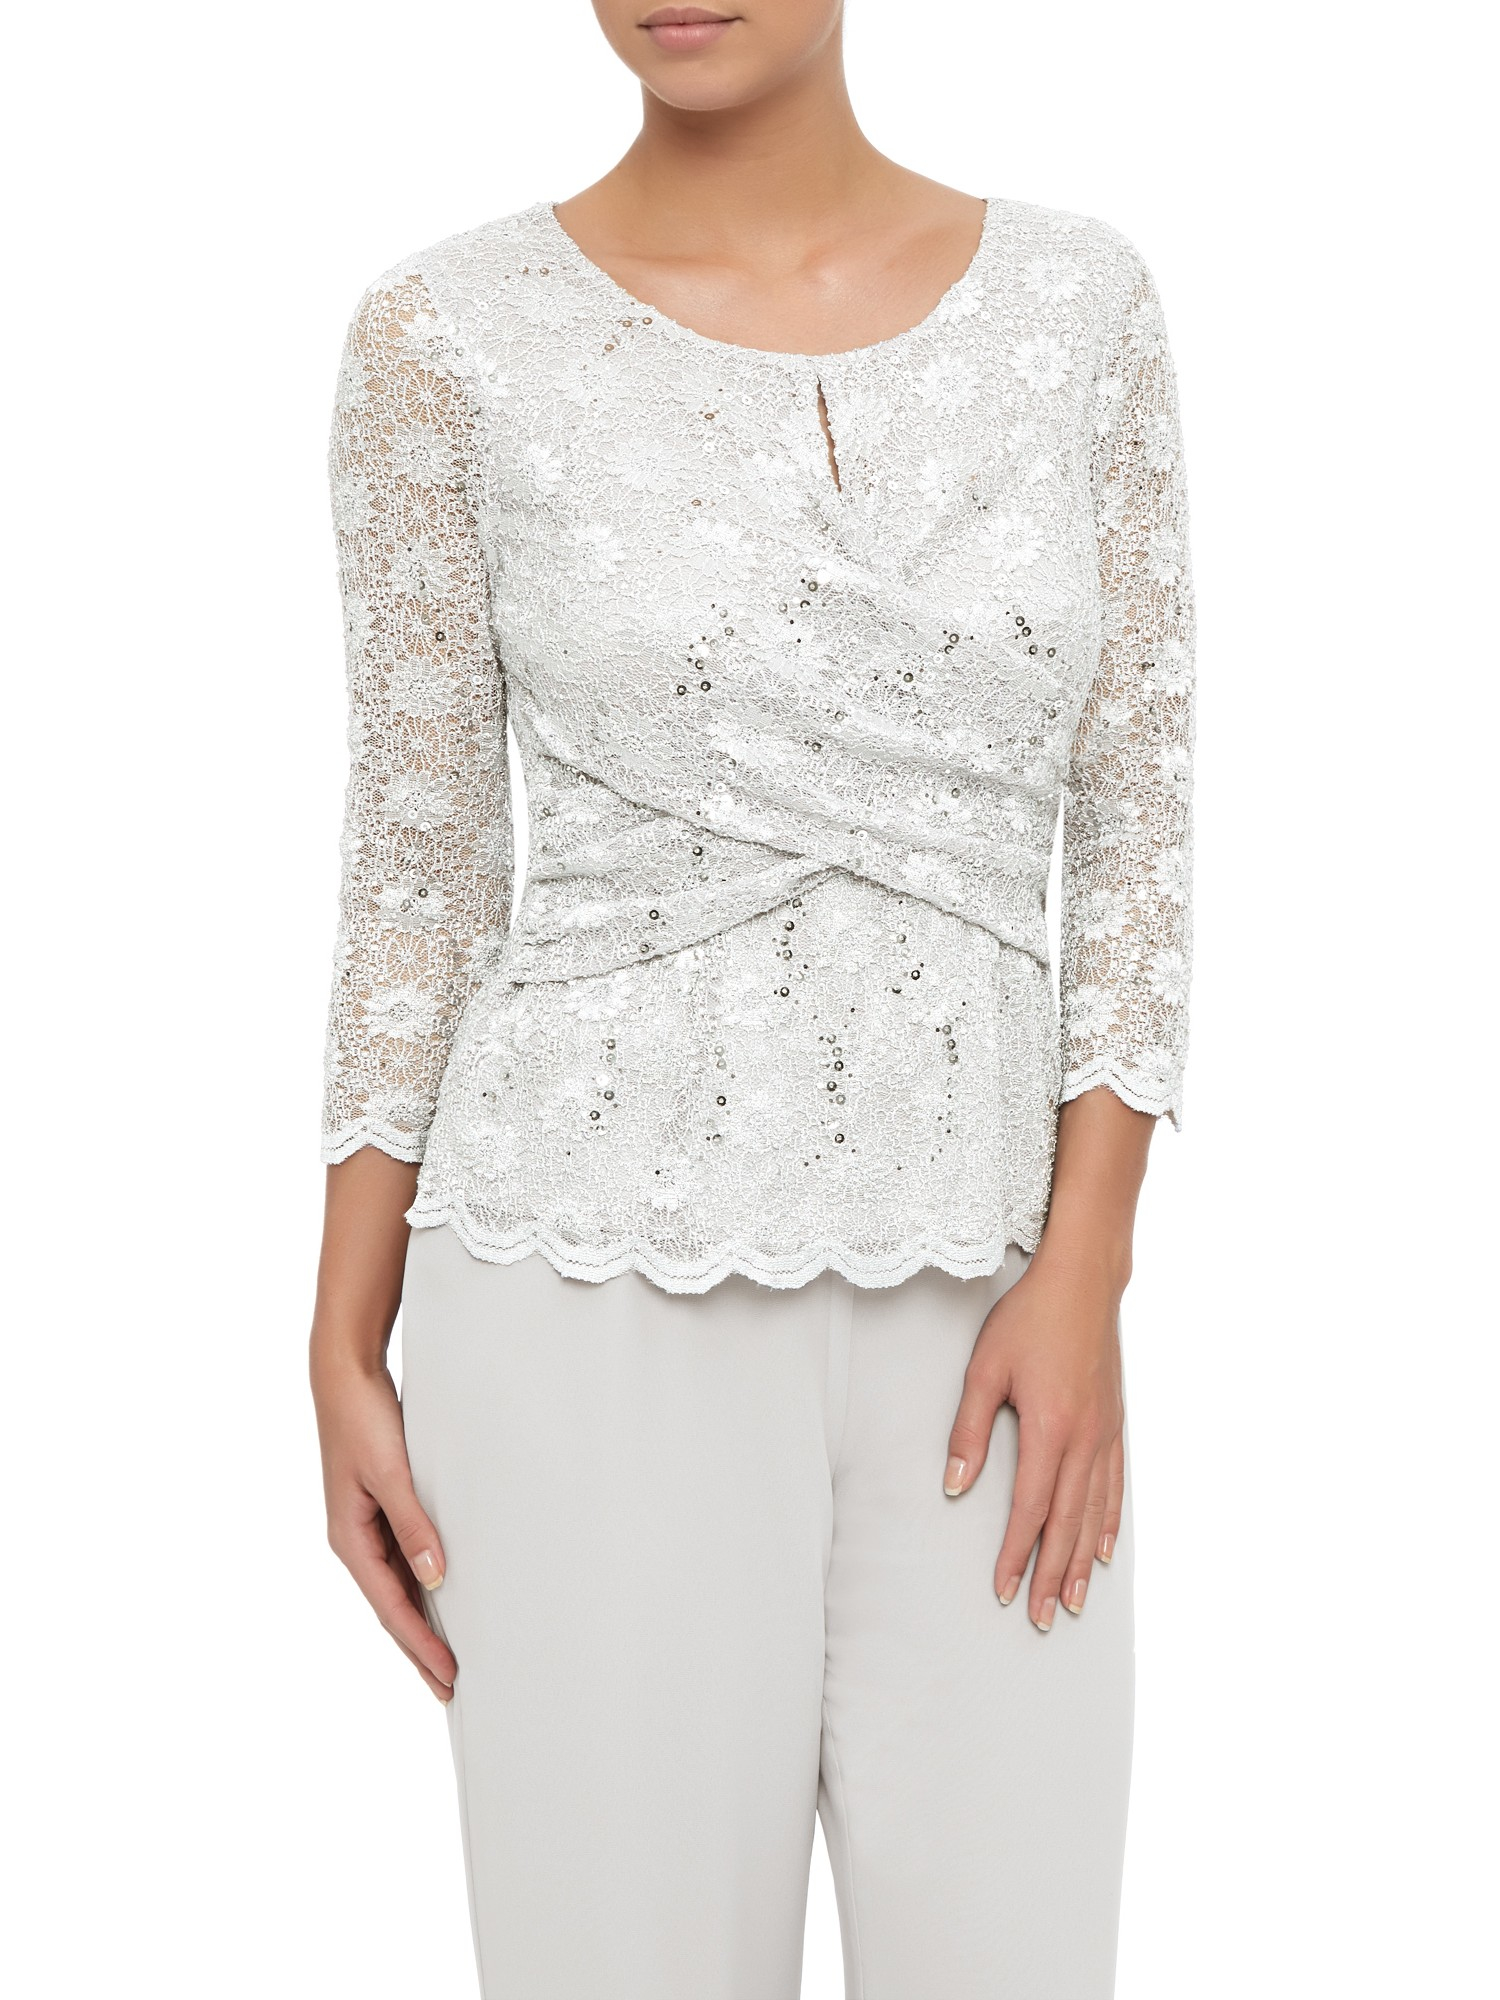 Find grey lace top at ShopStyle. Shop the latest collection of grey lace top from the most popular stores - all in one place.